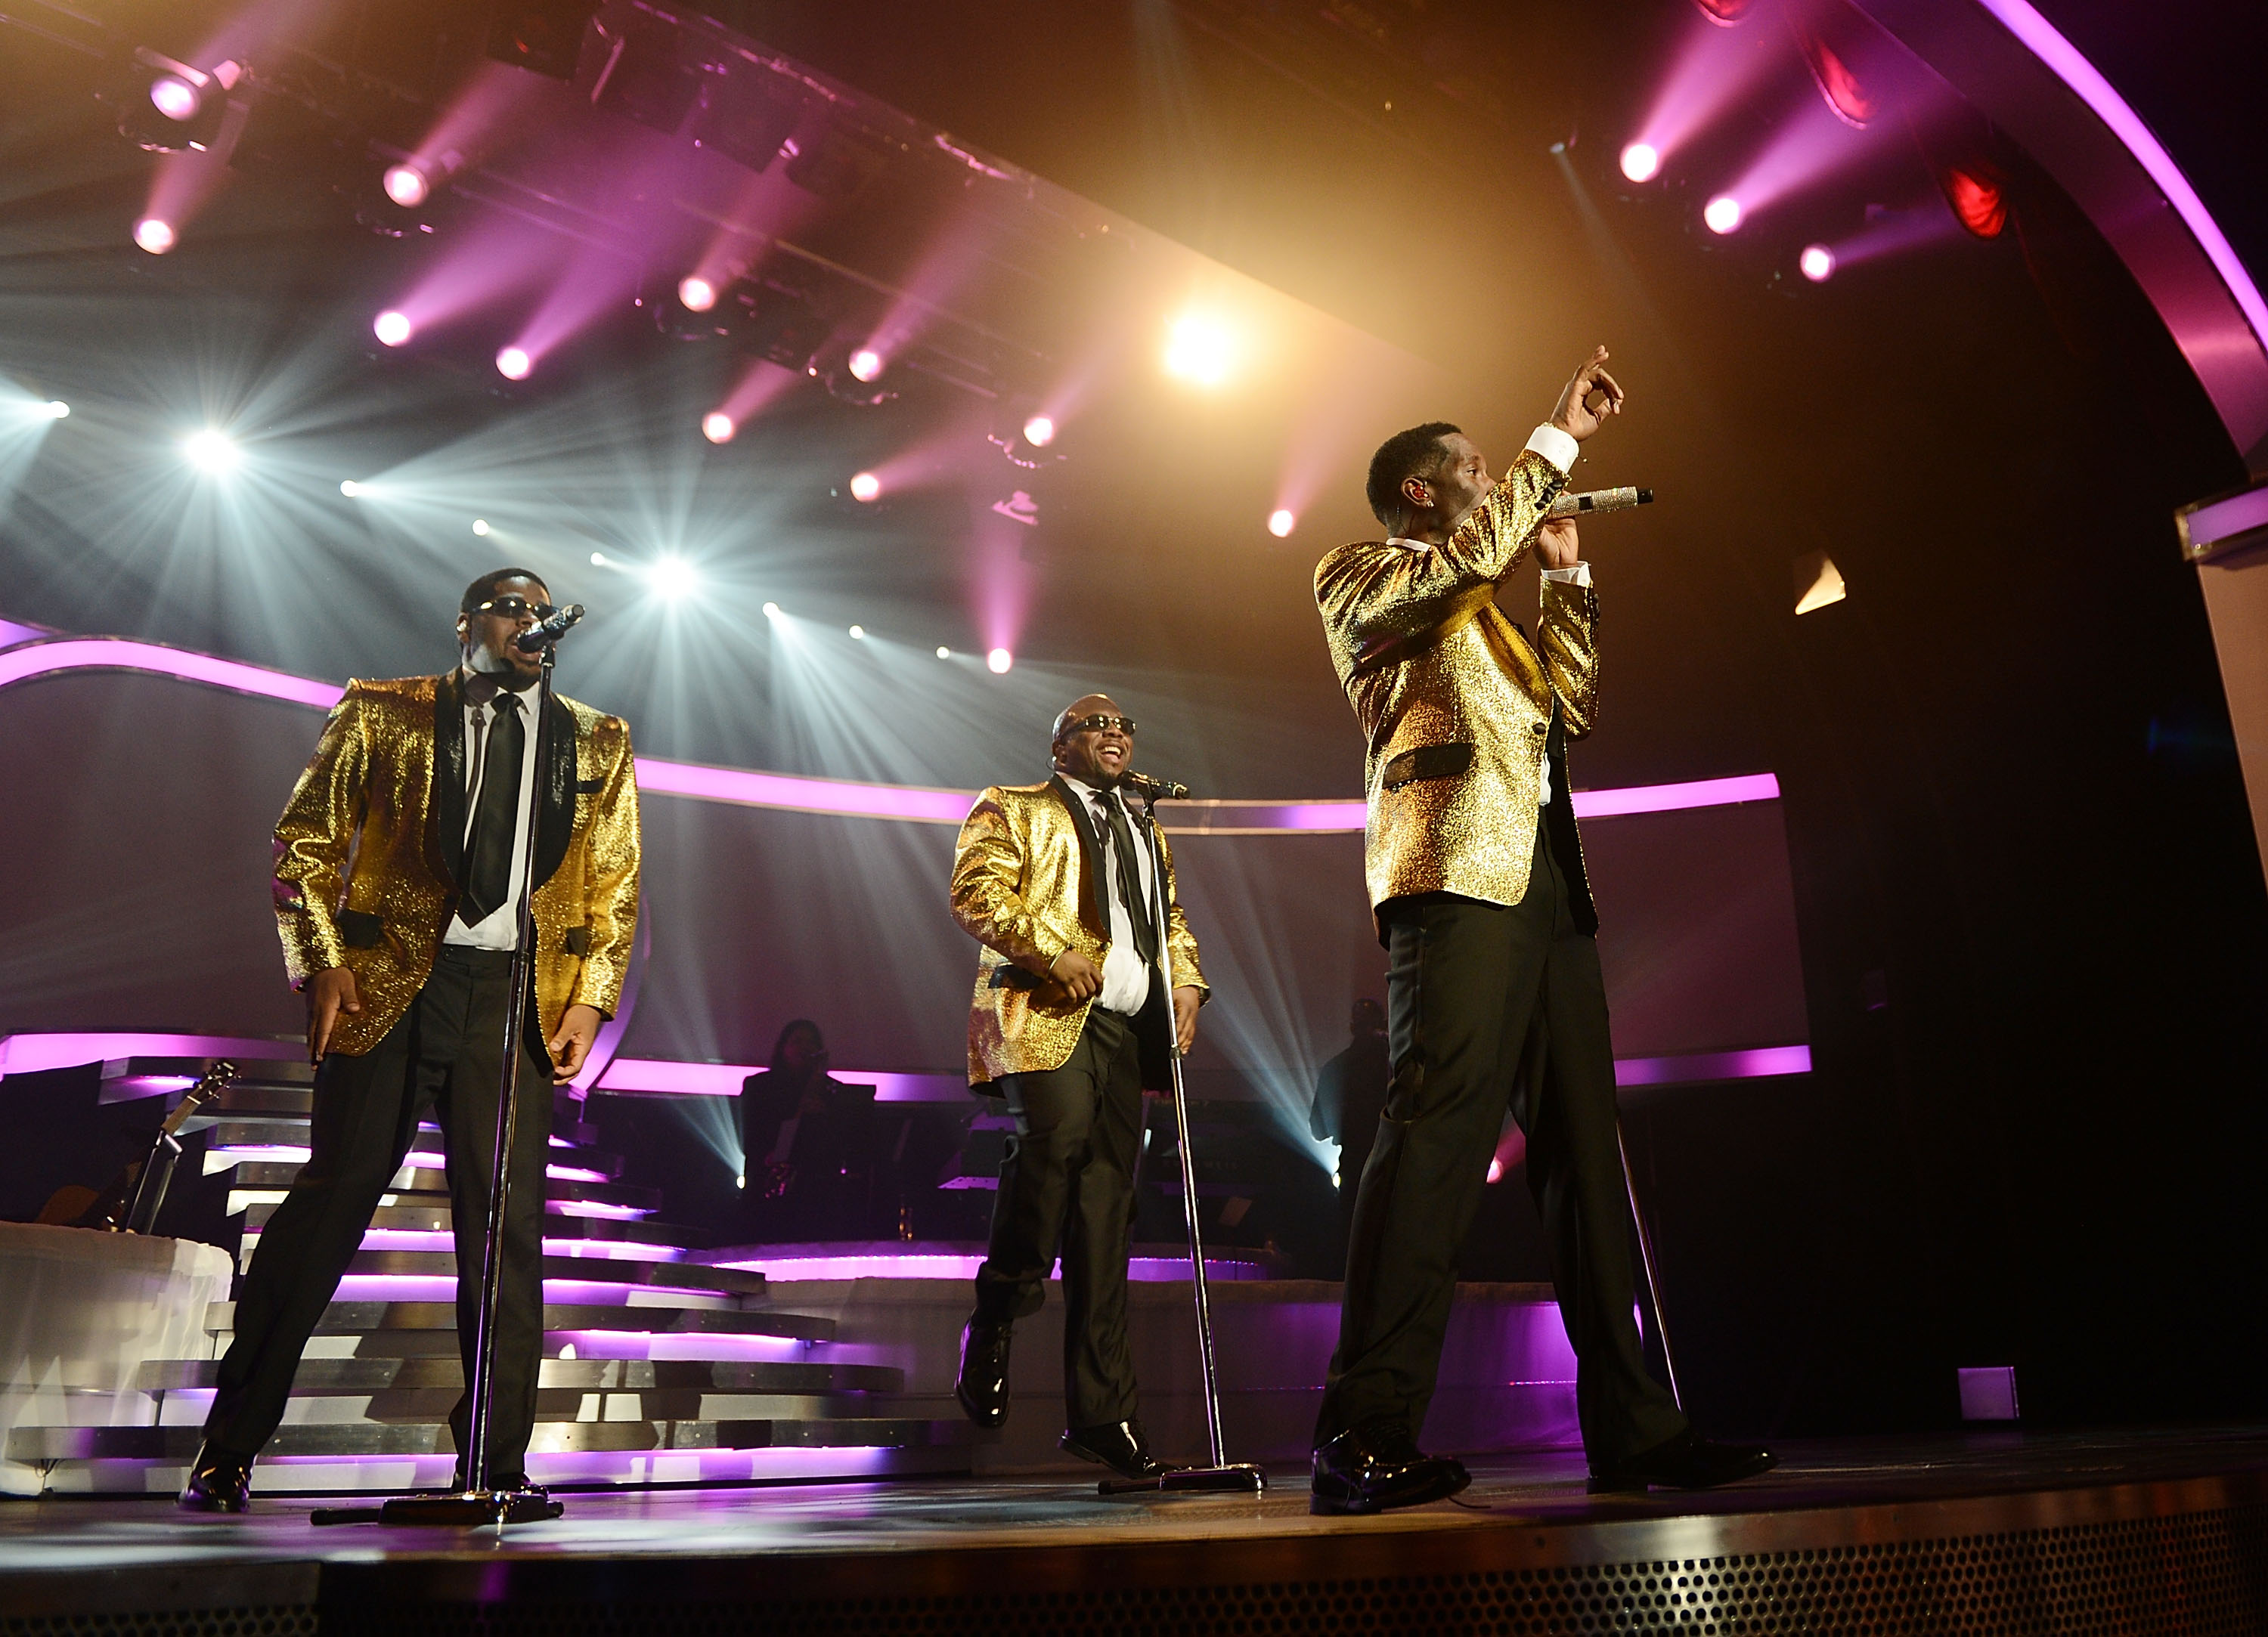 Boyz II Men kick off their Las Vegas residency at the Mirage Hotel and Casino on March 1 in Las Vegas. (Denise Truscello/Wireimage)